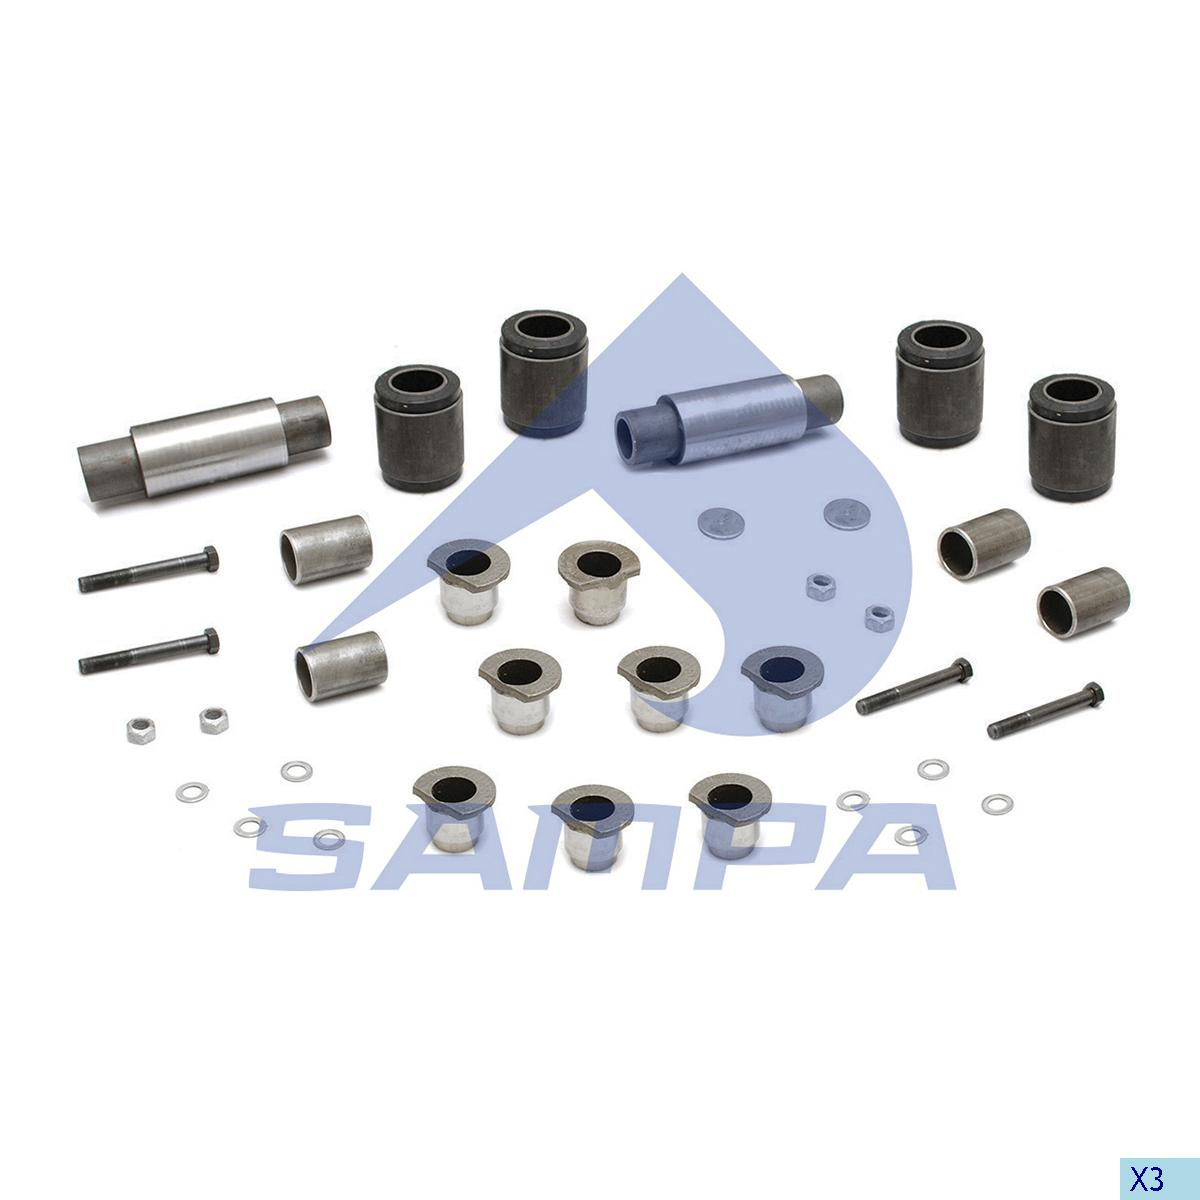 Repair Kit, Stabilizer Bar, Hendrickson, Suspension